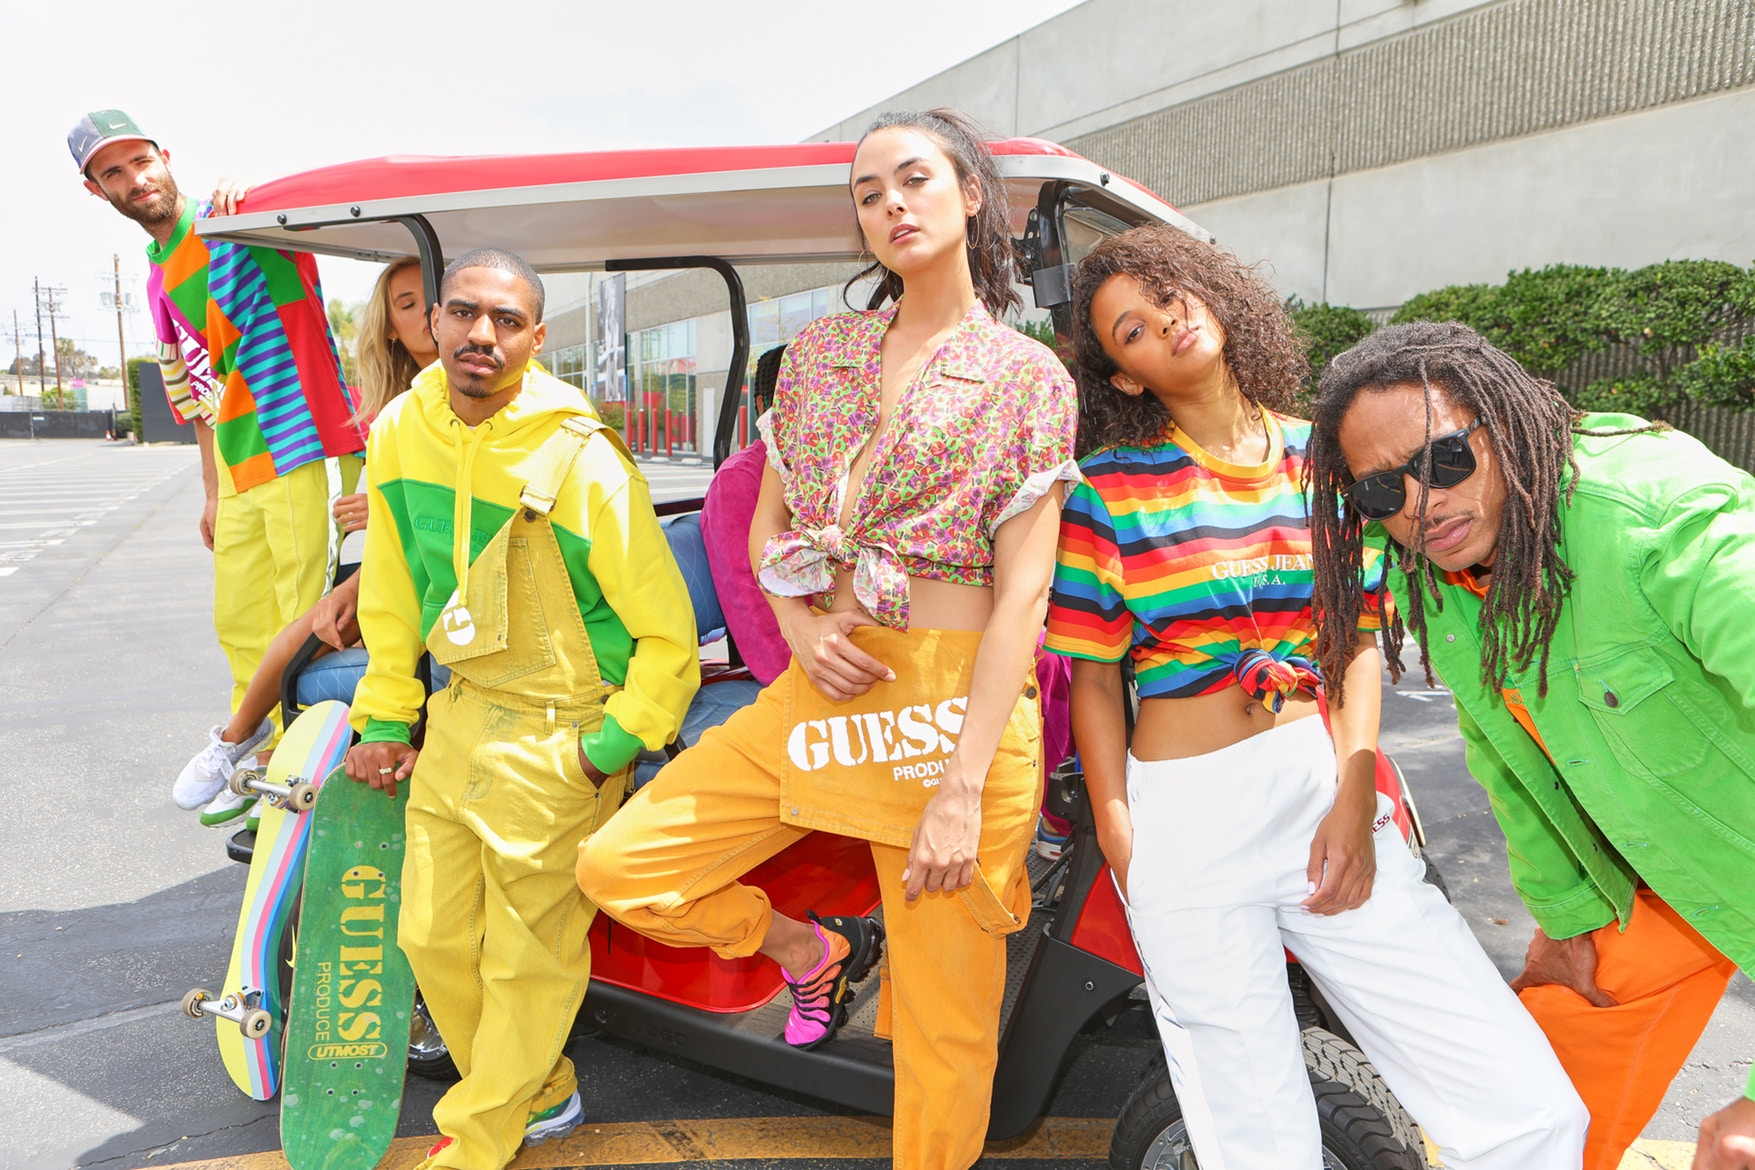 The Full Lookbook: Sean Wotherspoon x GUESS Jeans U.S.A Collaboration